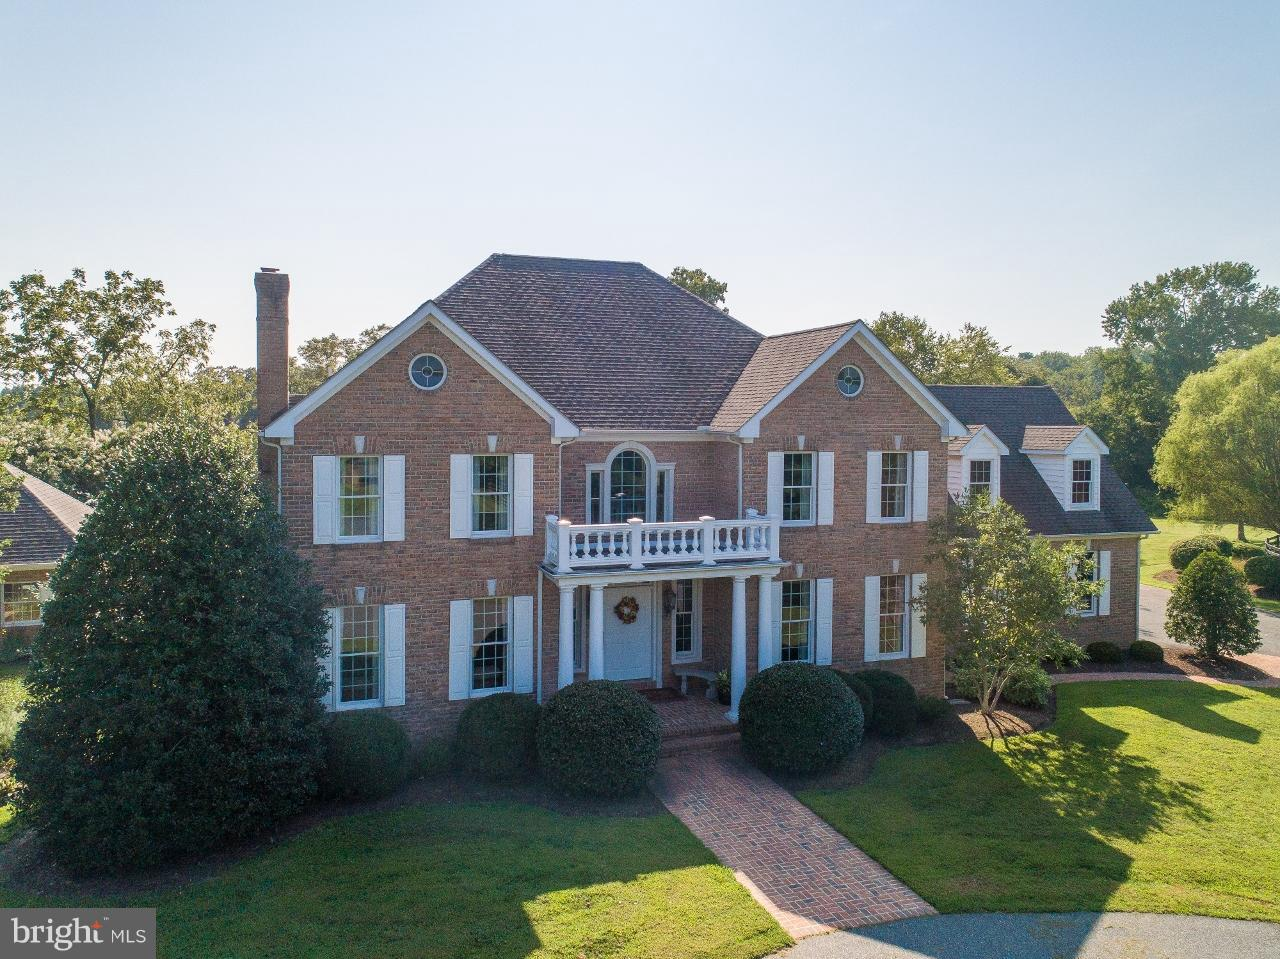 28425 BRICK ROW DRIVE, OXFORD, MD 21654